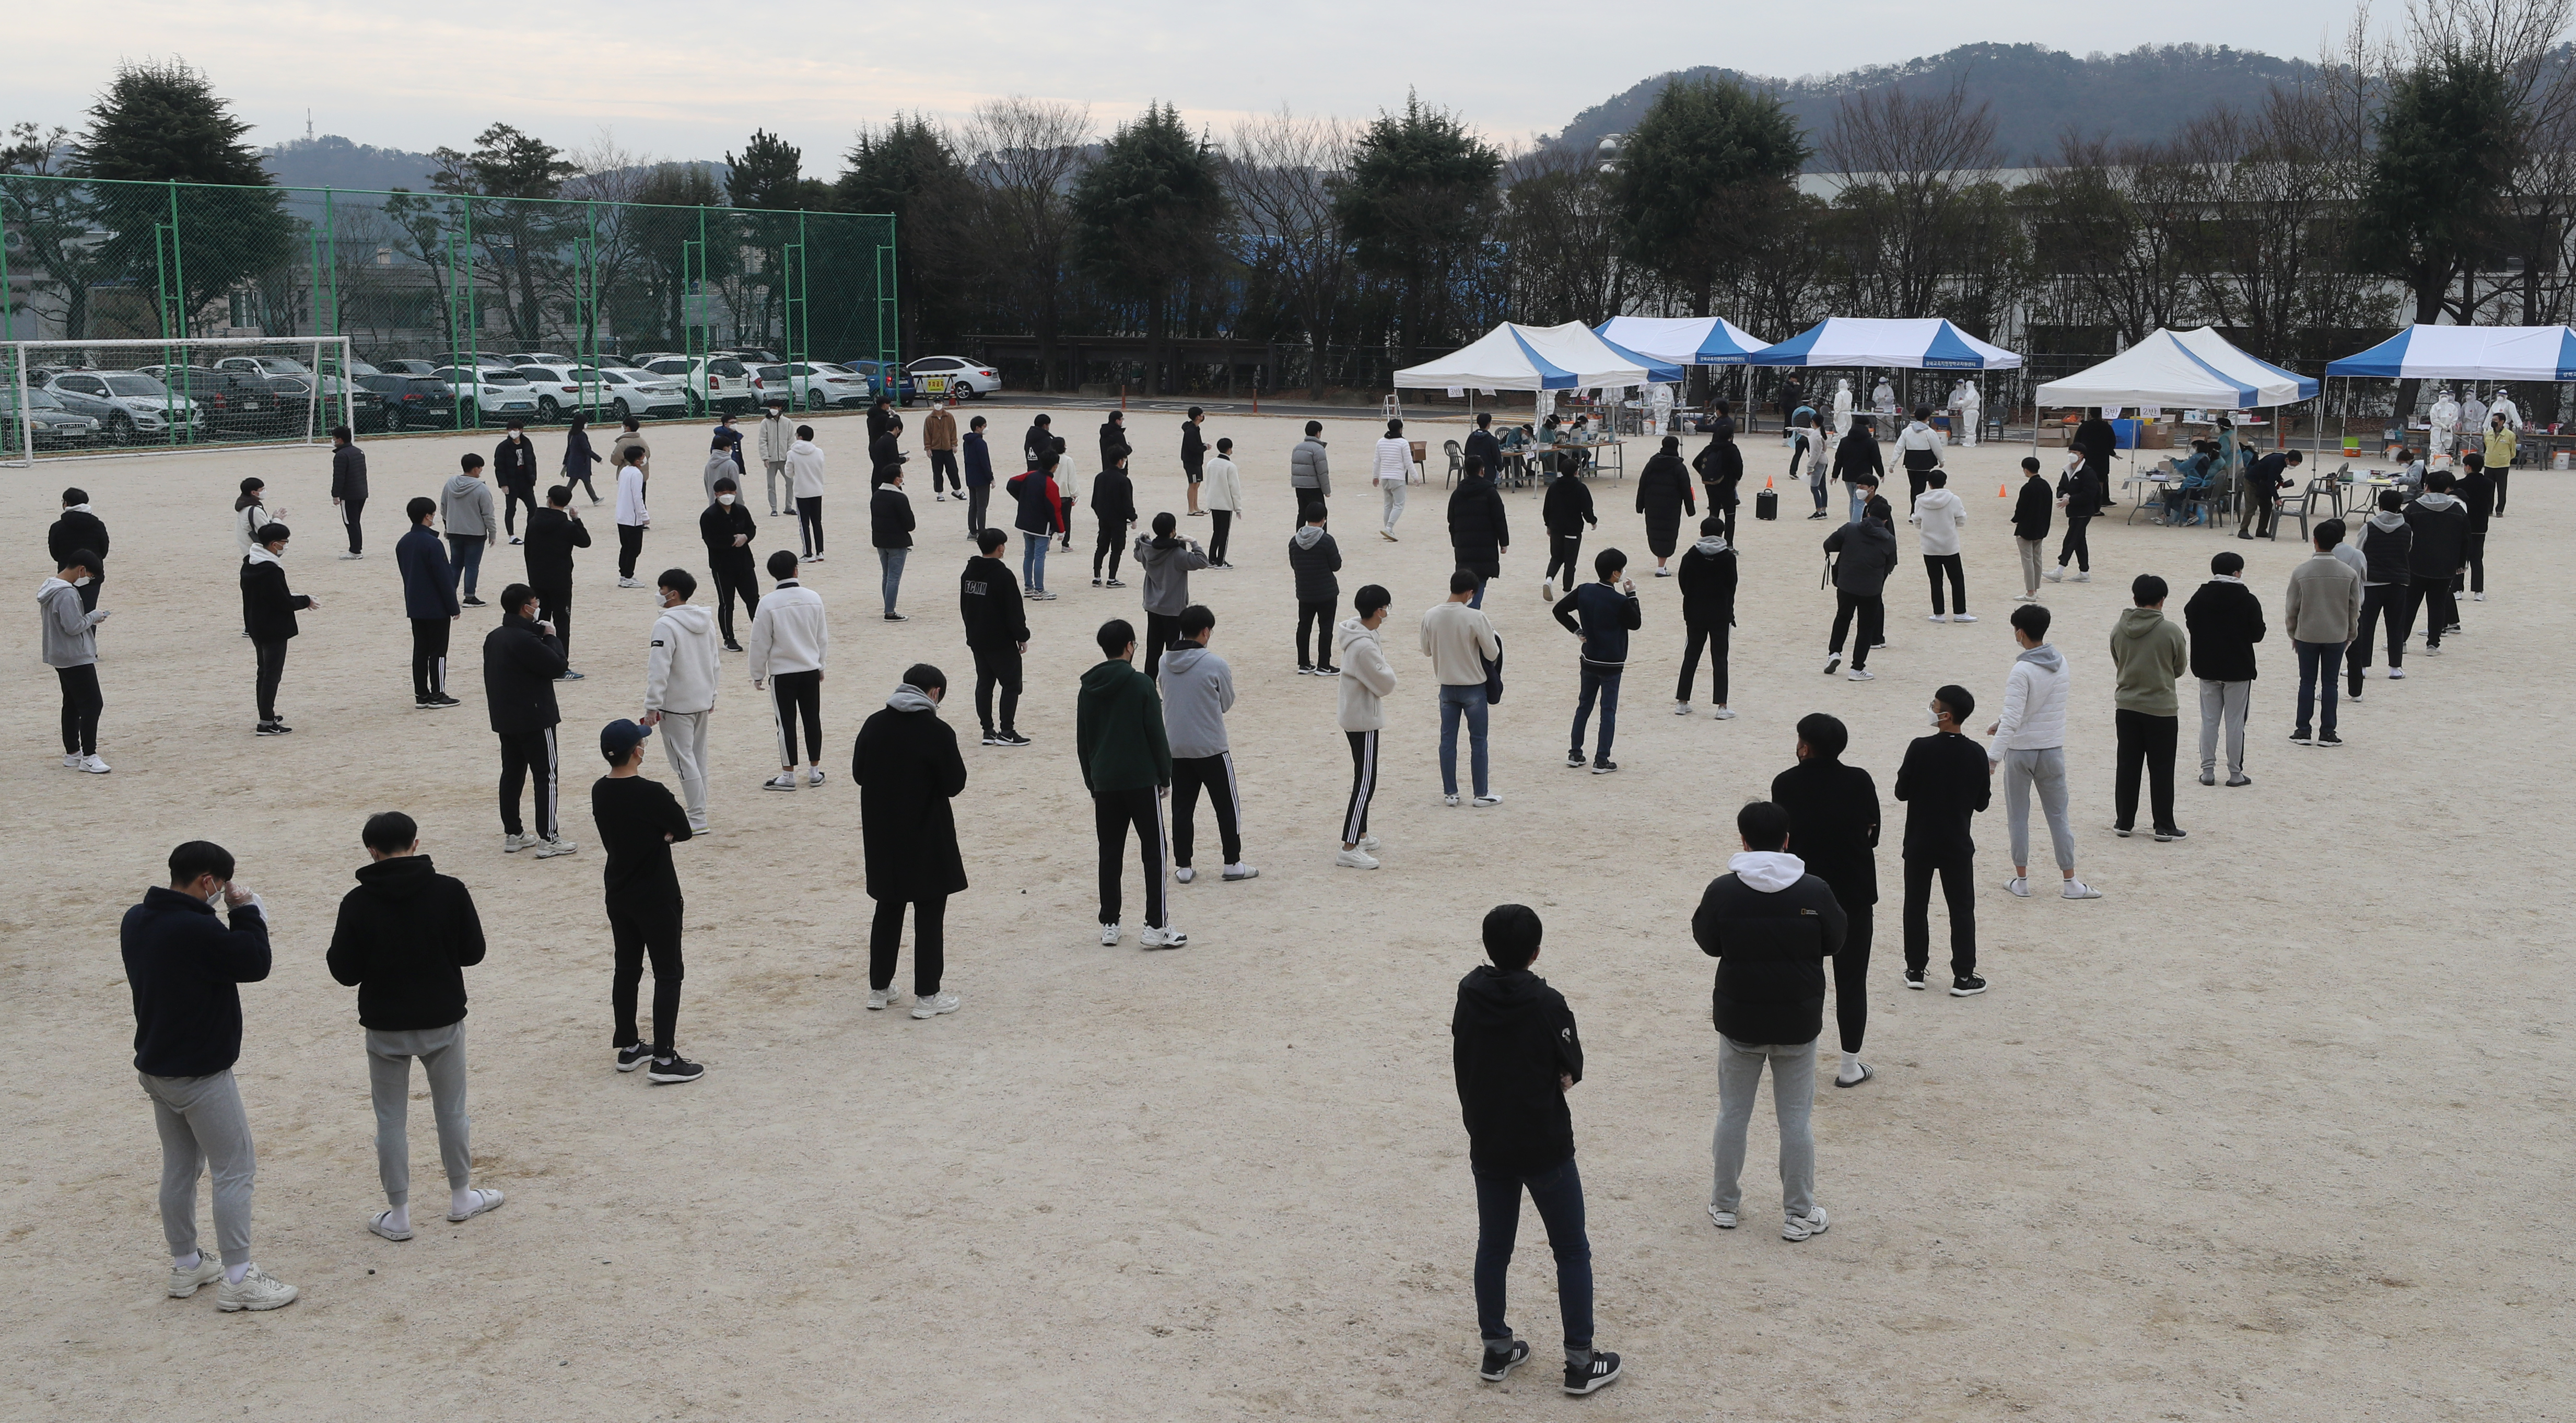 Students at a high school in Ulsan wait to get tested for COVID-19 on Nov. 26, 2020, after a fellow student was confirmed to be infected with the disease. (Photo: Yonhap News)